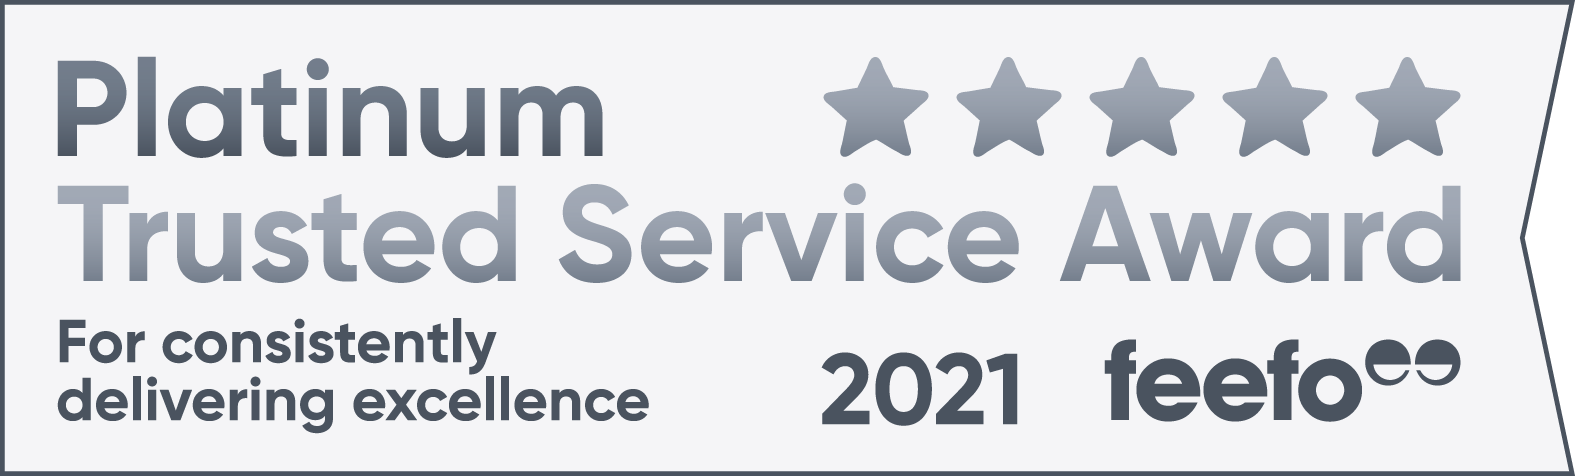 Feefo 2021 Platinum Trusted Service Award